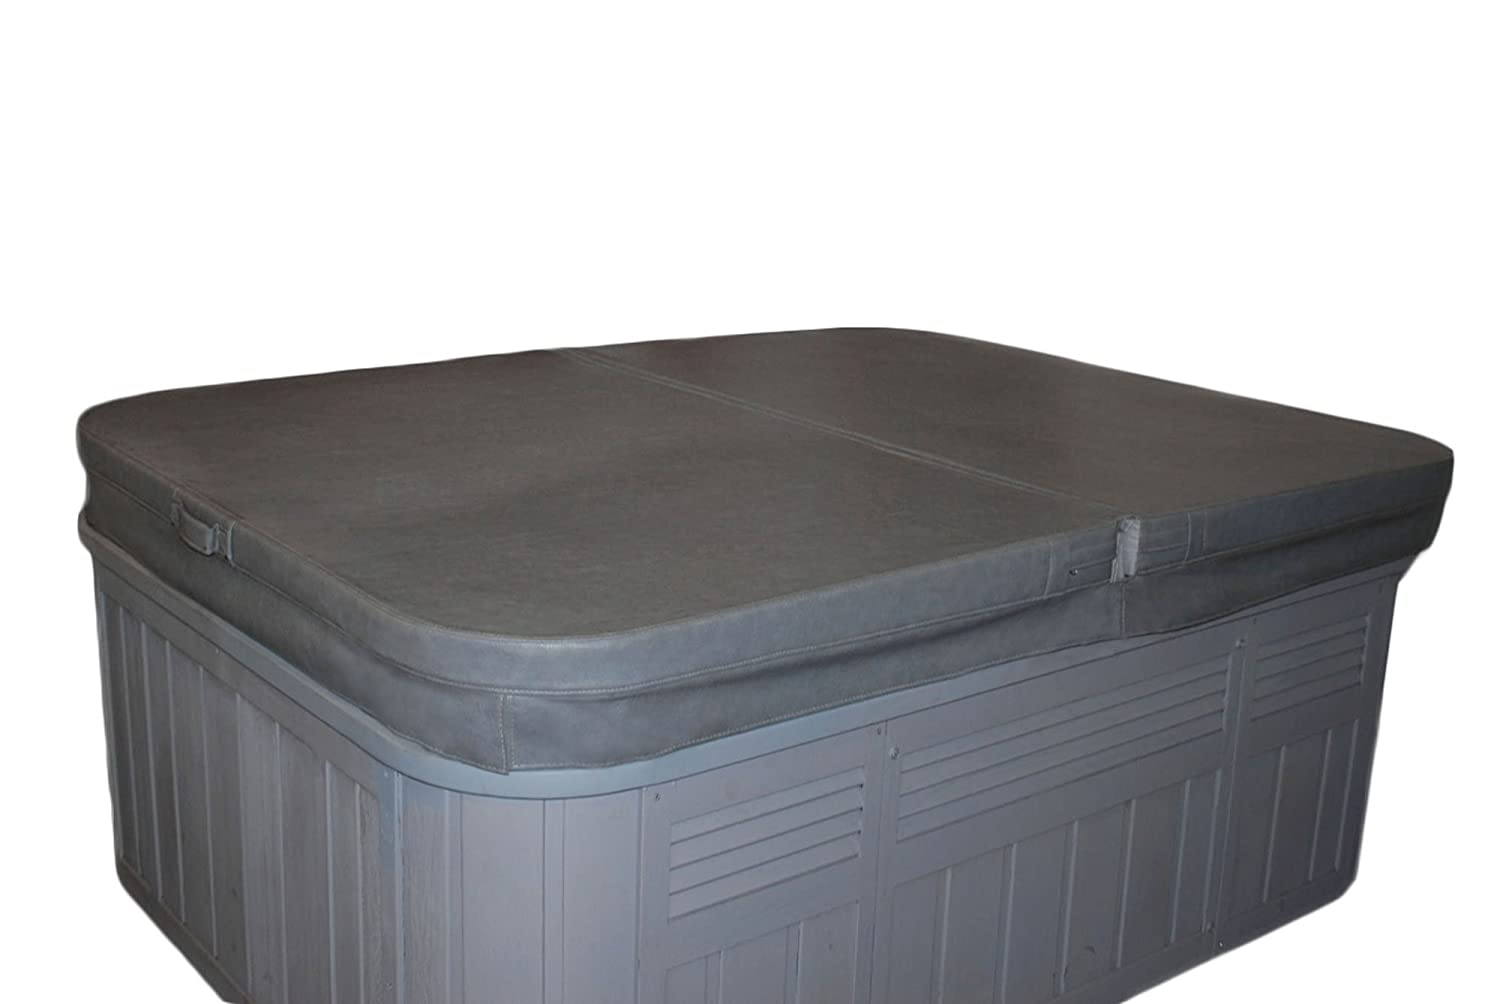 swimming com covers and dp hot pool garden beyondnice cover for amazon spa outdoor sale tub inch